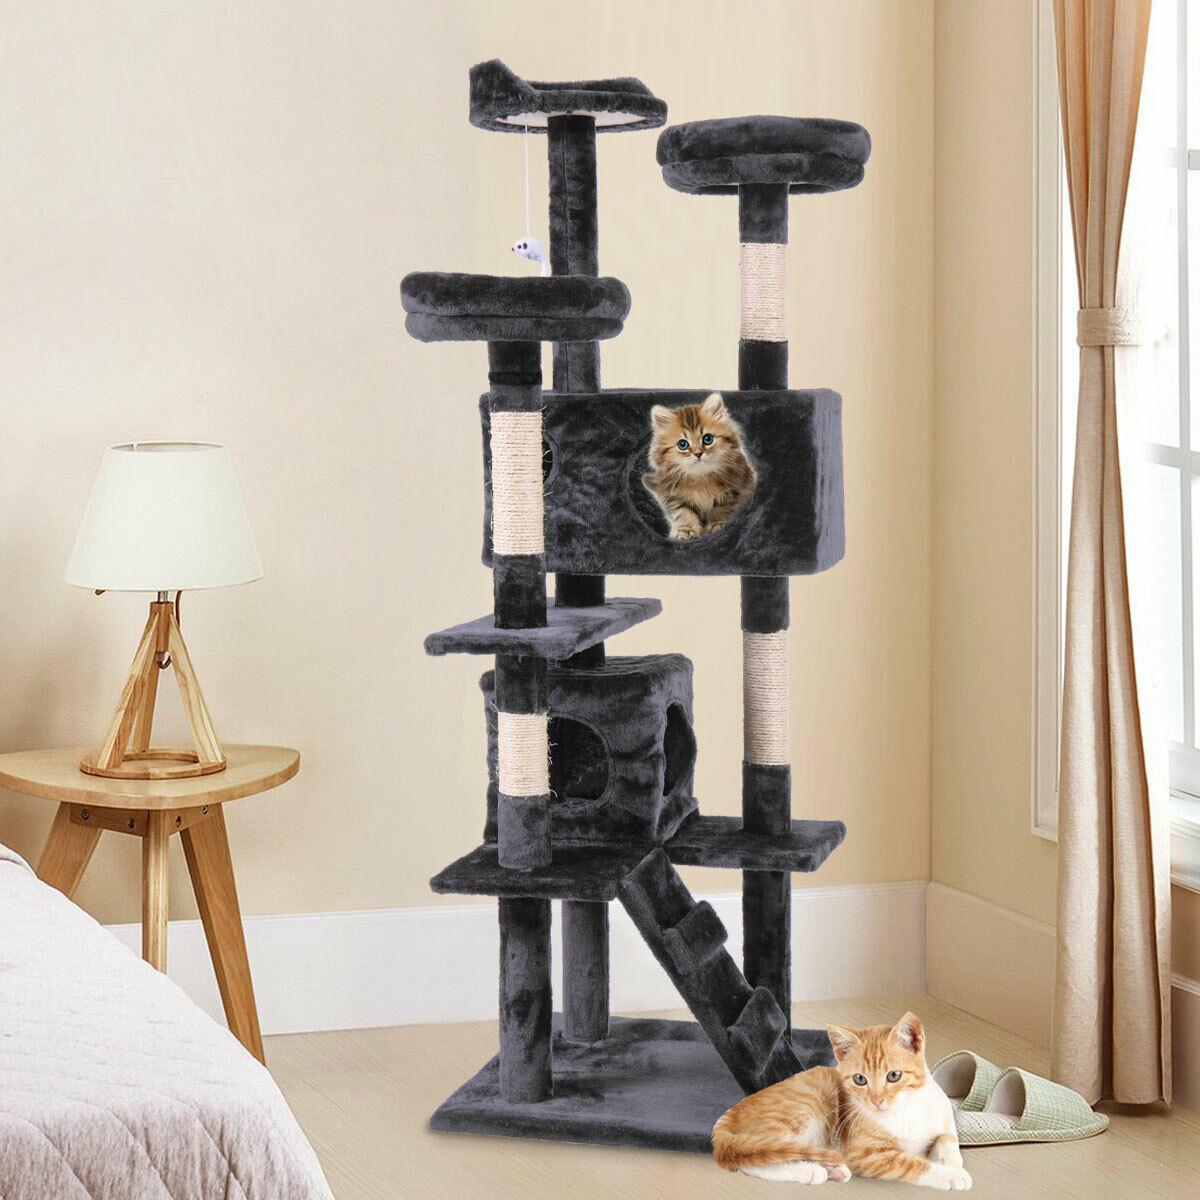 2021 60 Cat Tree Tower Condo Furniture Scratching Post Pet Kitty Play House Black From Ls12191744 51 85 Dhgate Com